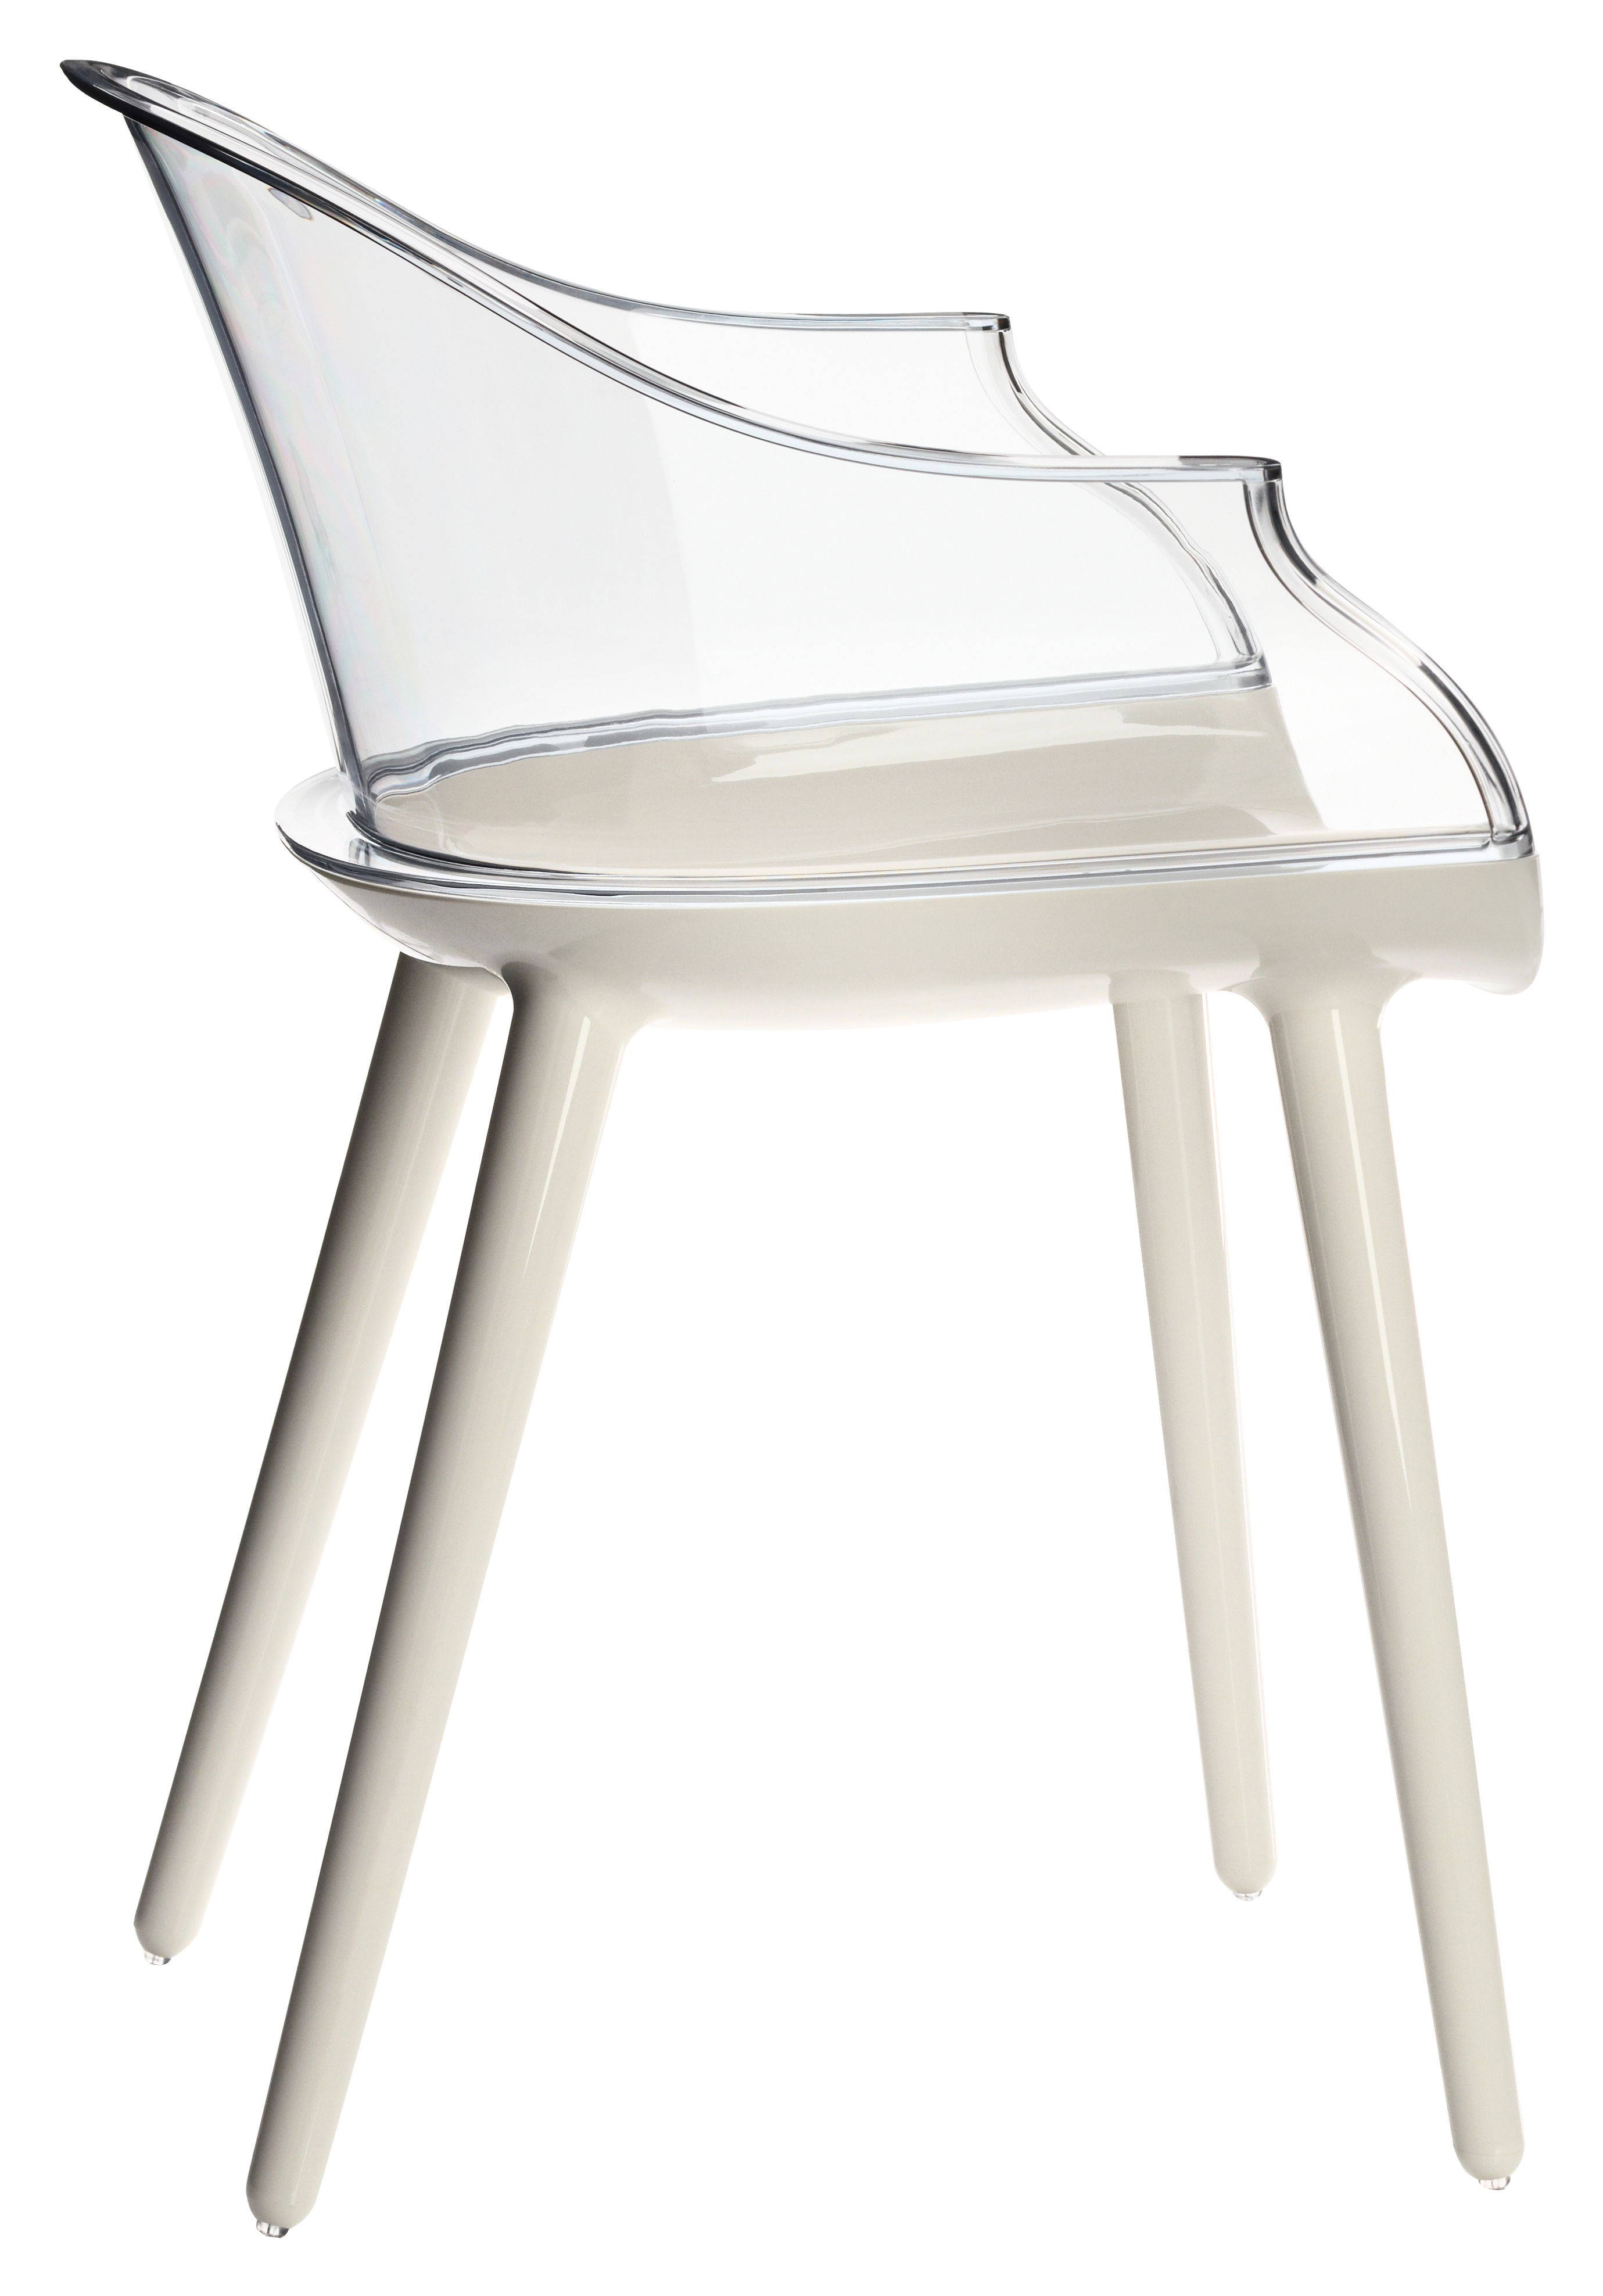 Furniture - Chairs - Cyborg Armchair - Polycarbonate / Transparent backrest by Magis - Solid white / Back : transparent - Polycarbonate